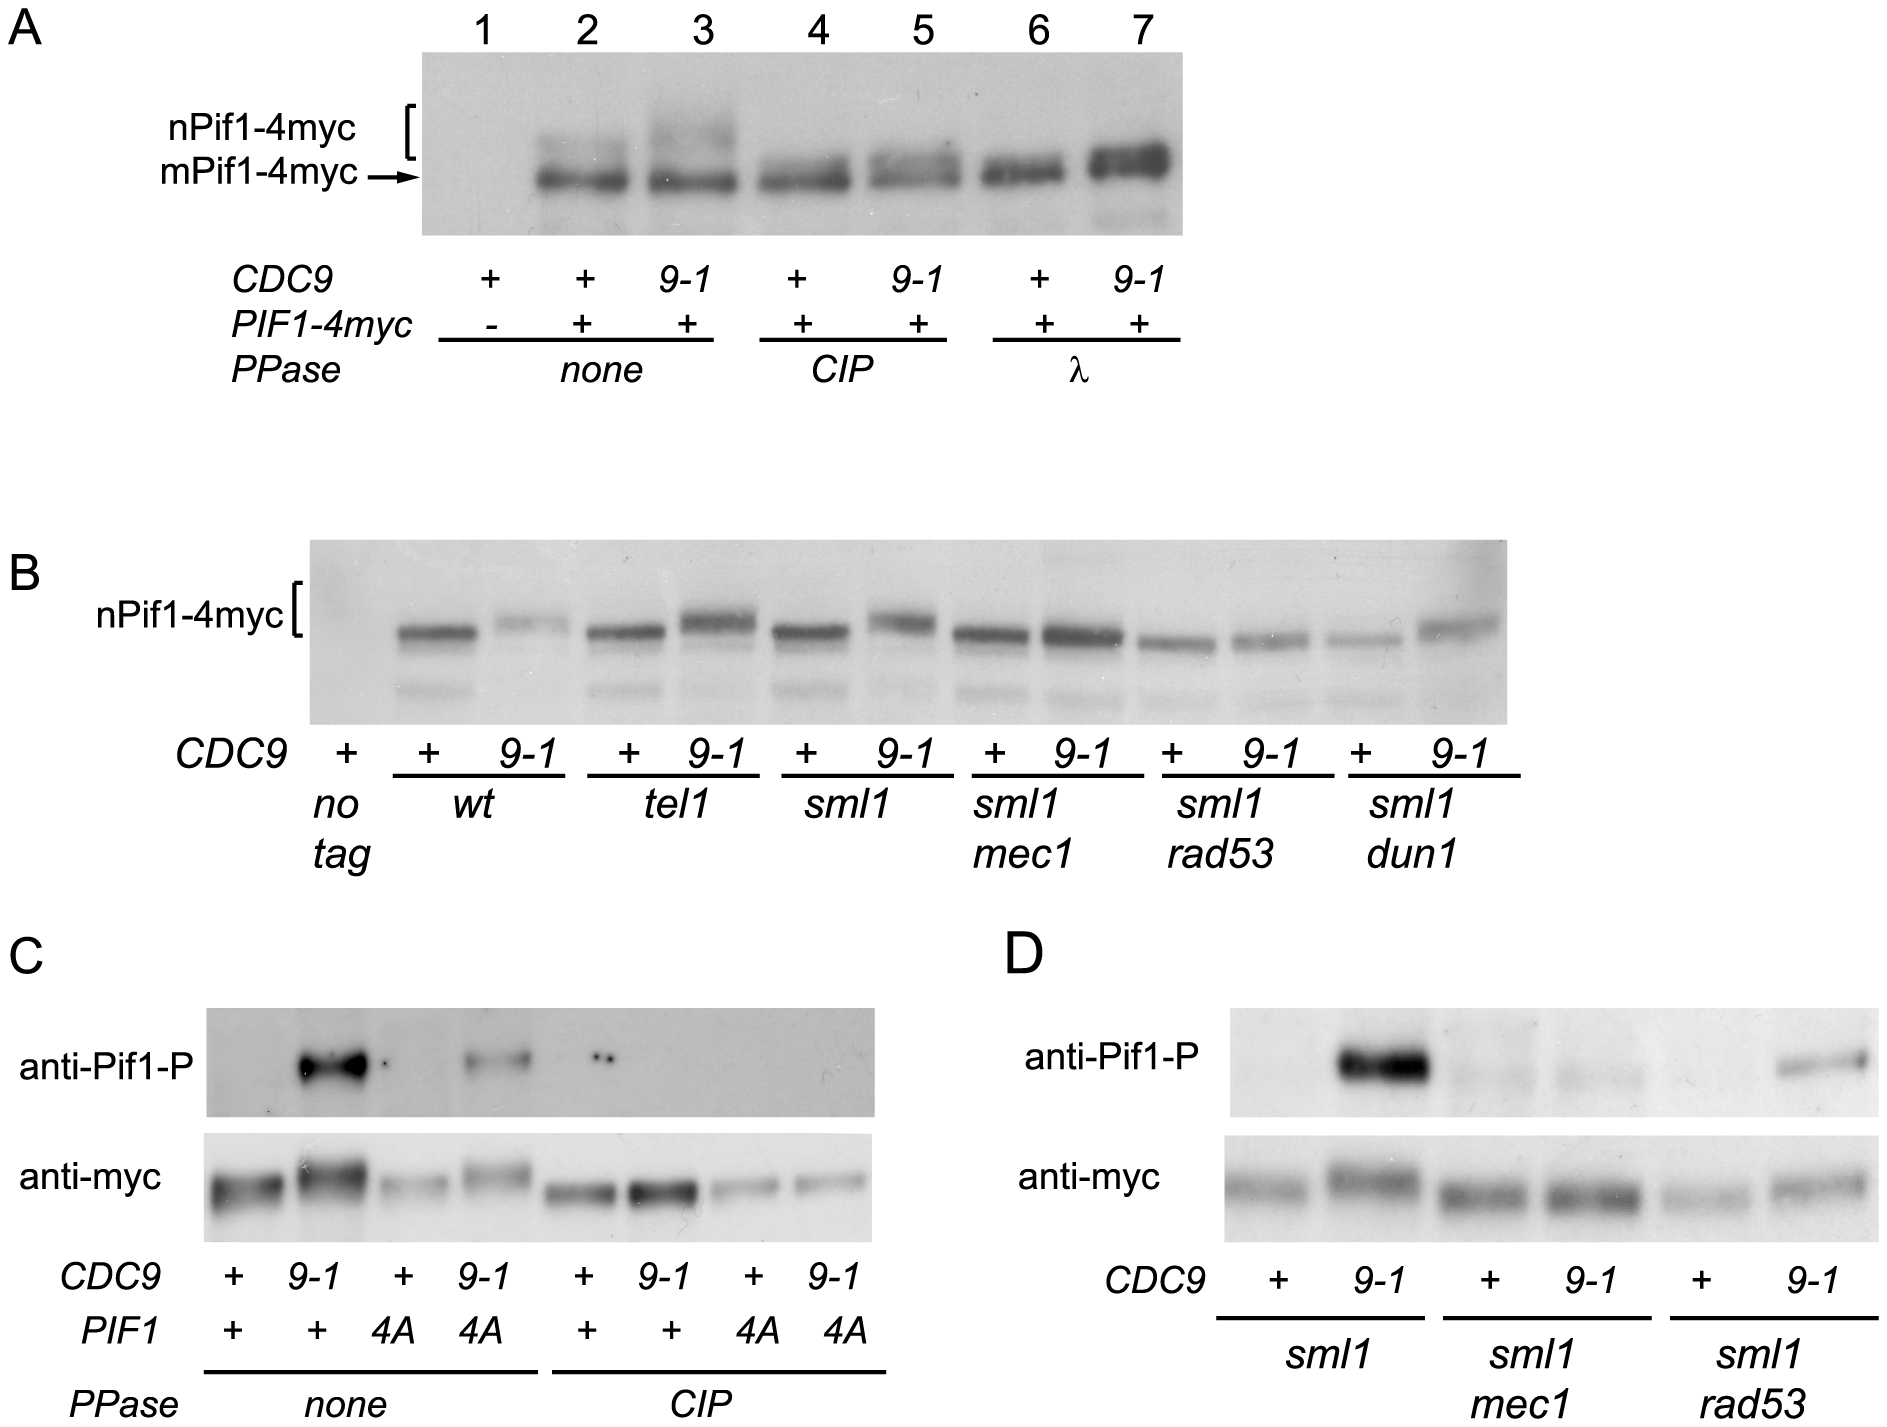 nPif1 is phosphorylated in <i>cdc9-1</i> cells and this phosphorylation is required for telomere elongation.